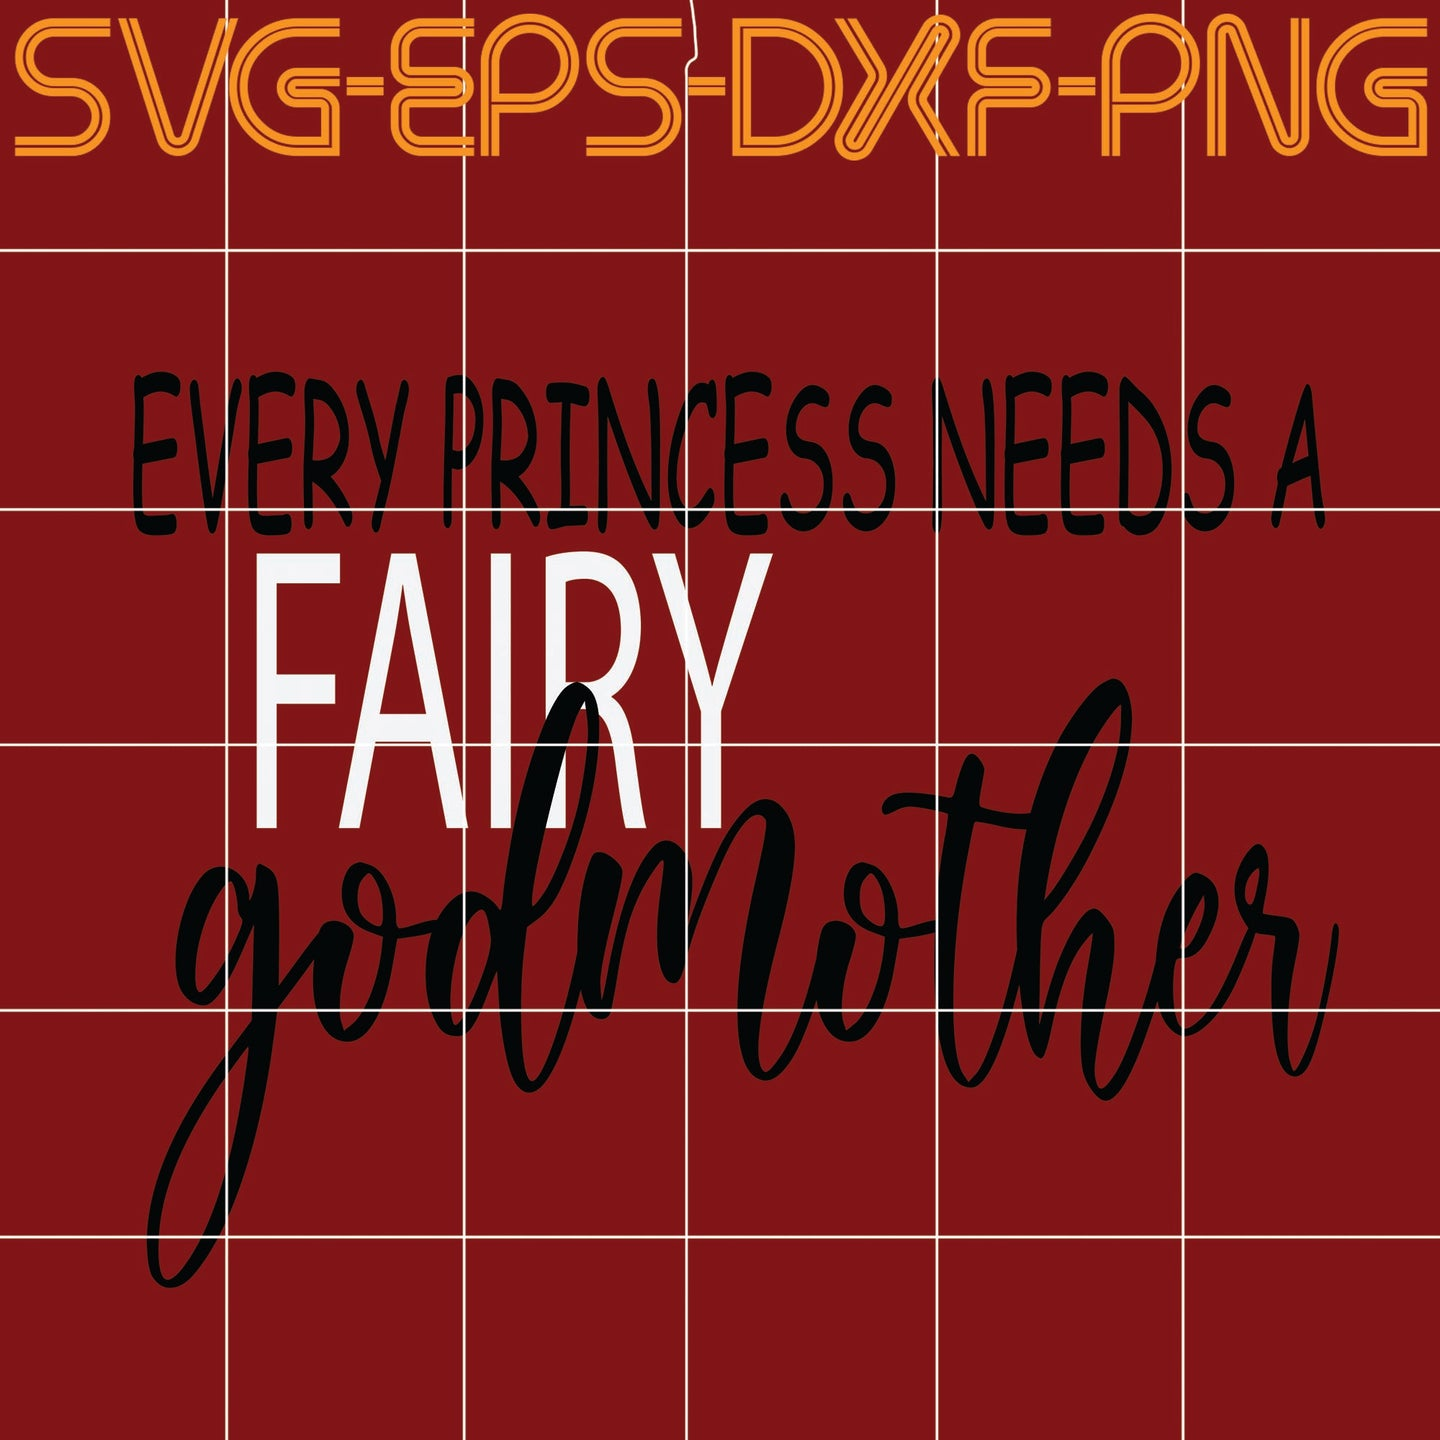 Every Princess Needs A Fairy Godmother, Quotes, SVG, PNG, EPS, DXF, Digital download